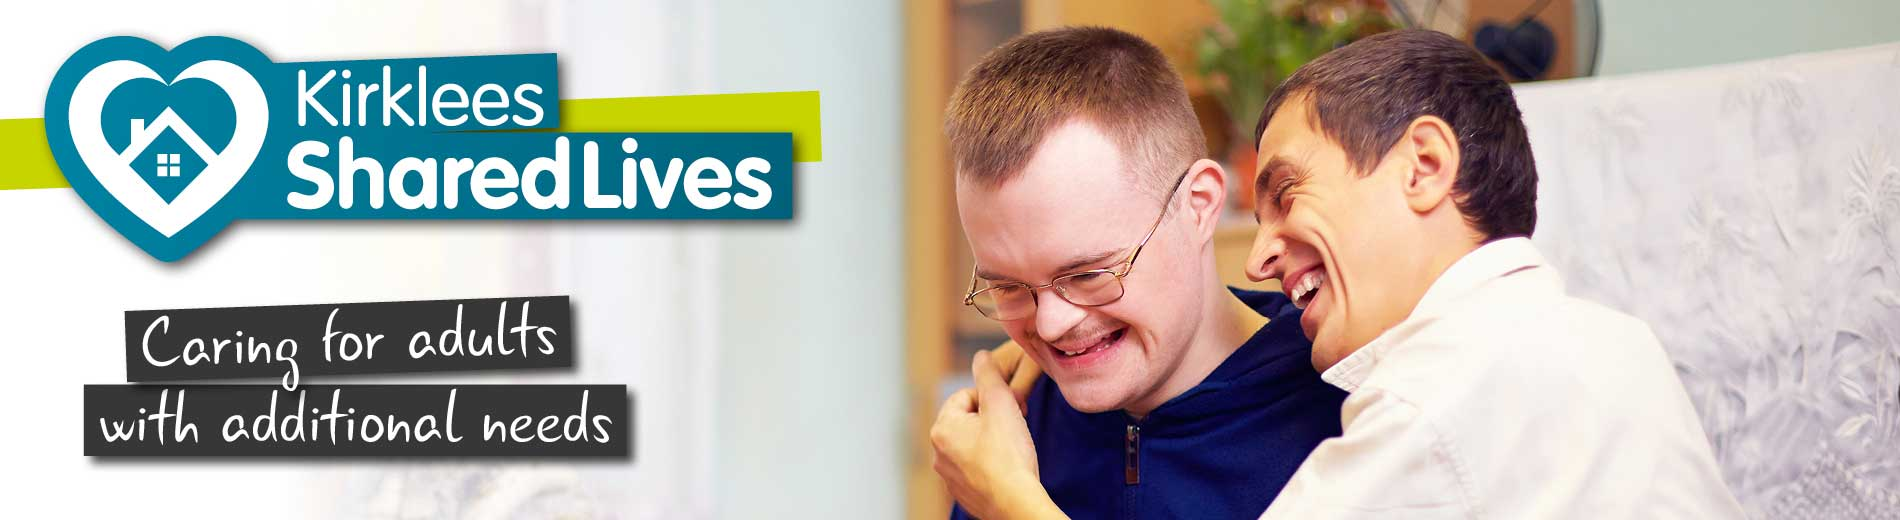 Shared Lives - Caring for adults with additional needs